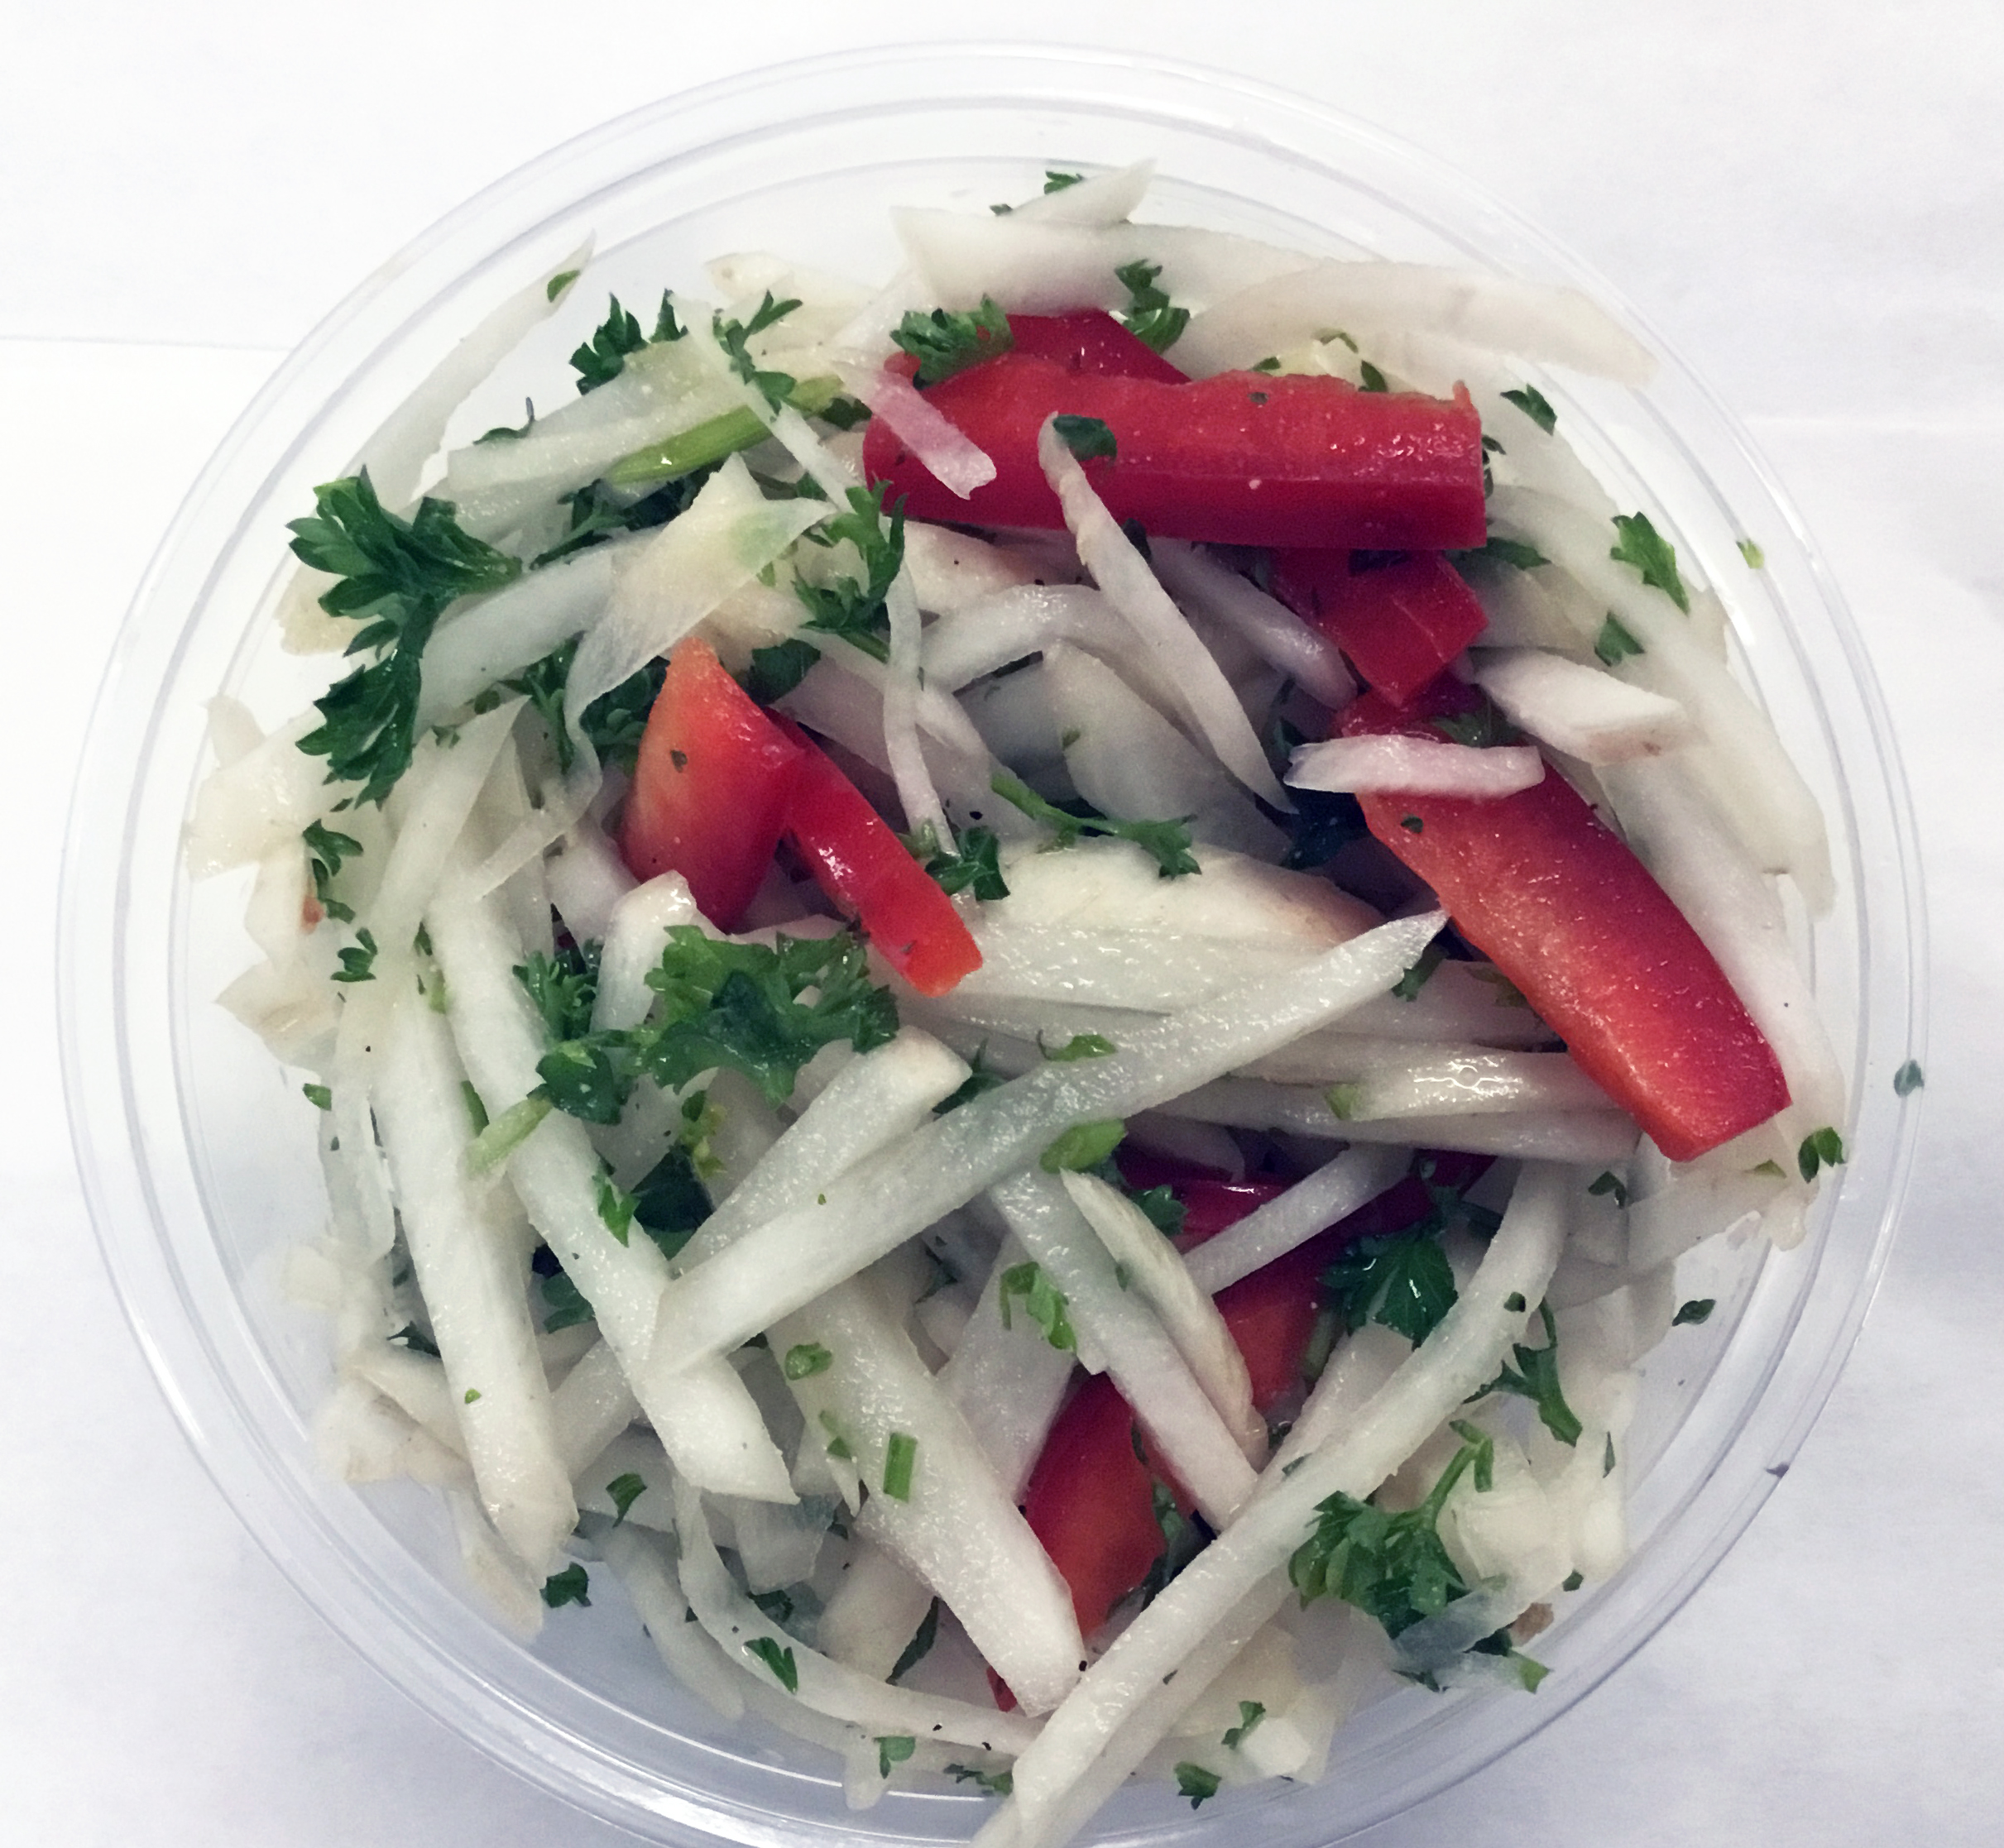 Daikon radish and red bell peppers with parsley.